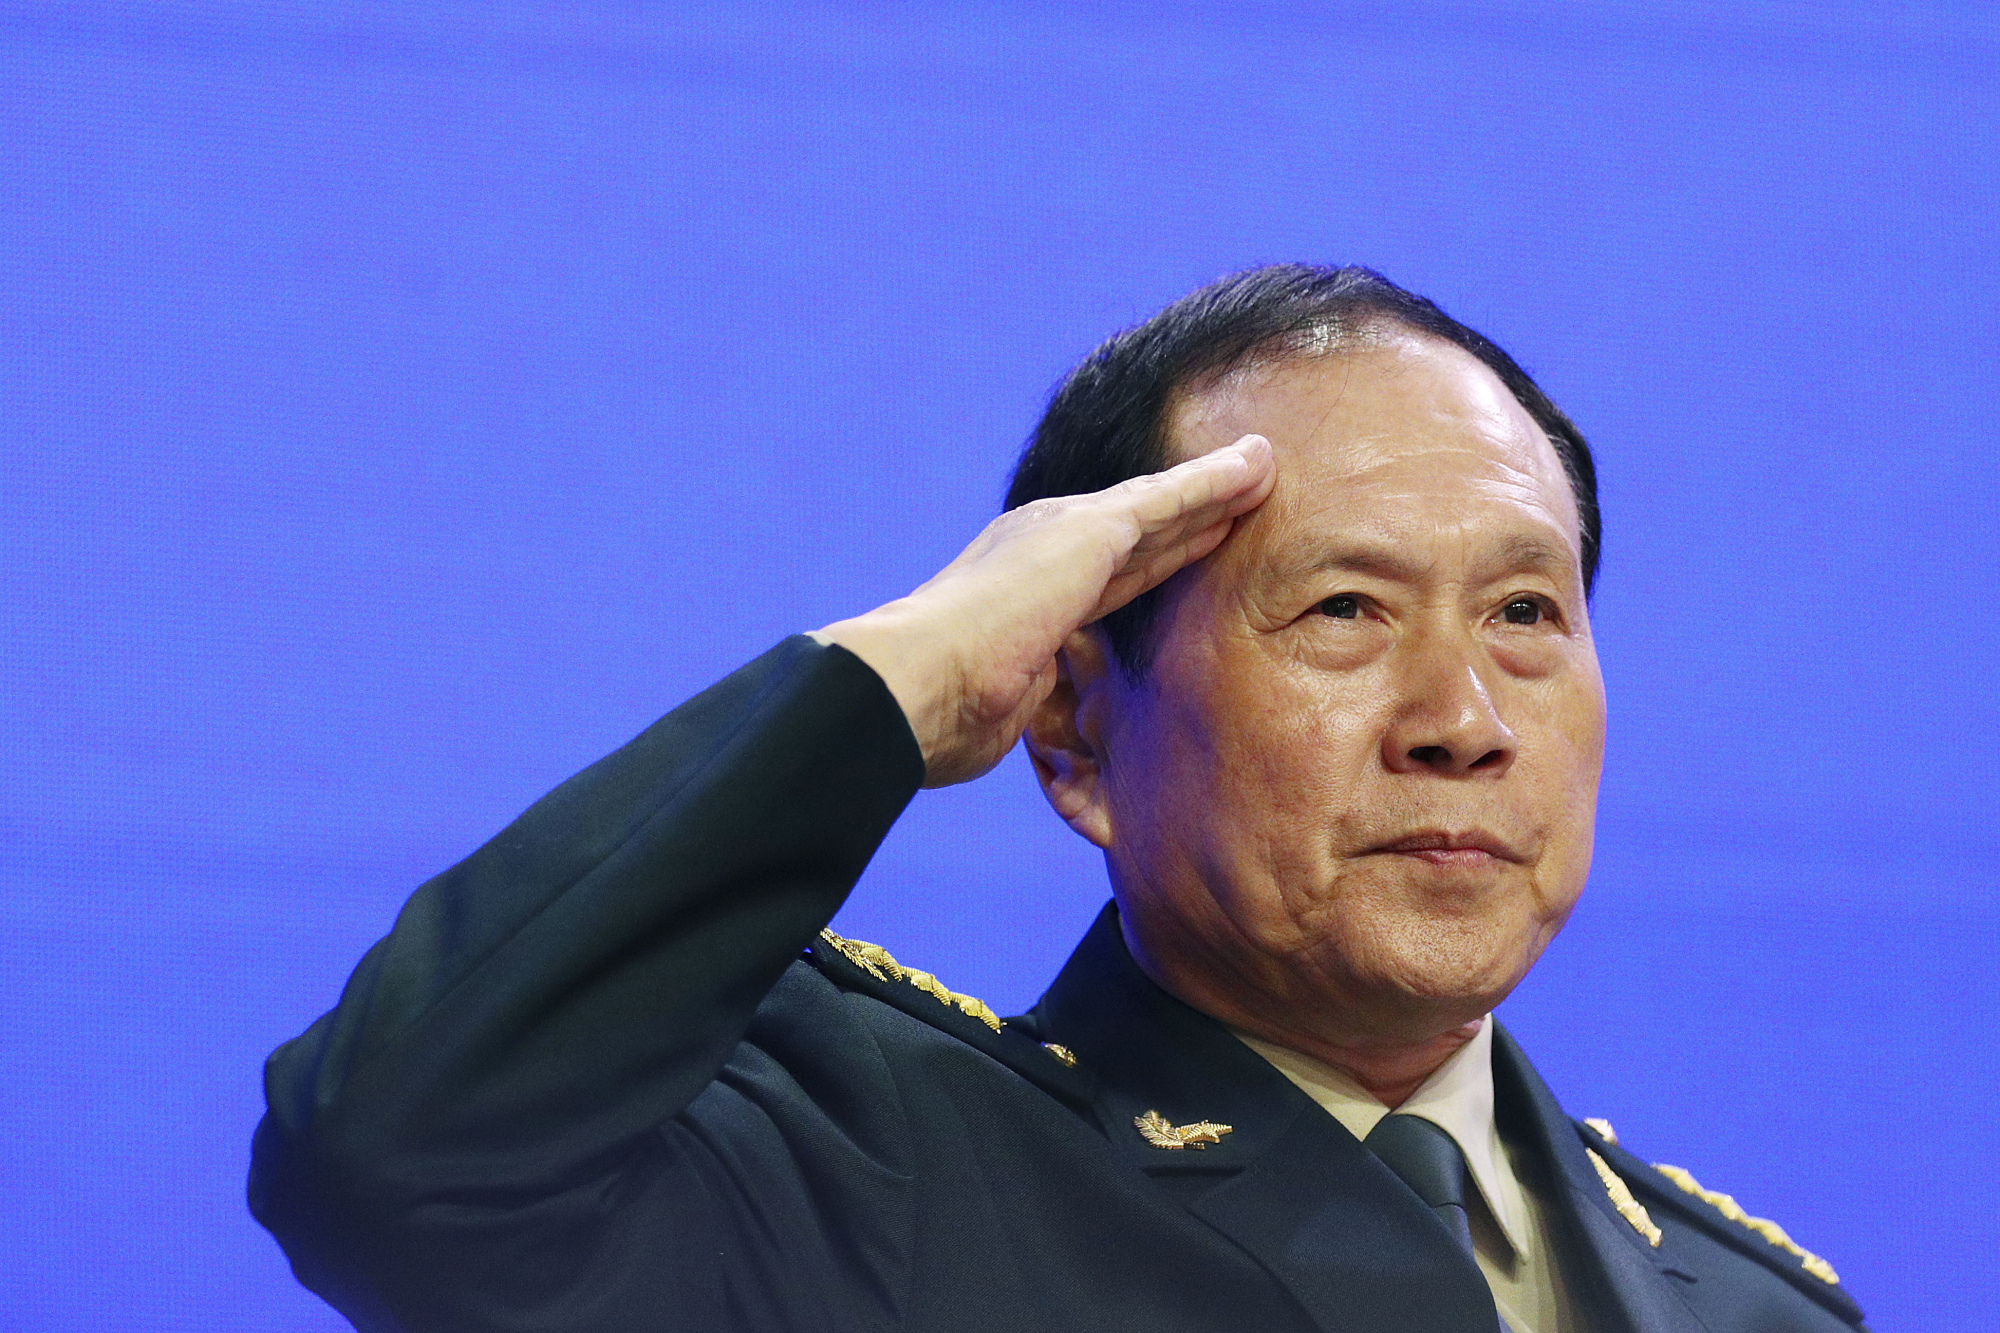 Chinese Defense Minister Gen. Wei Fenghe salutes attendees ahead of the fourth plenary session of the 18th International Institute for Strategic Studies Shangri-La Dialogue, in Singapore on Sunday.   AP